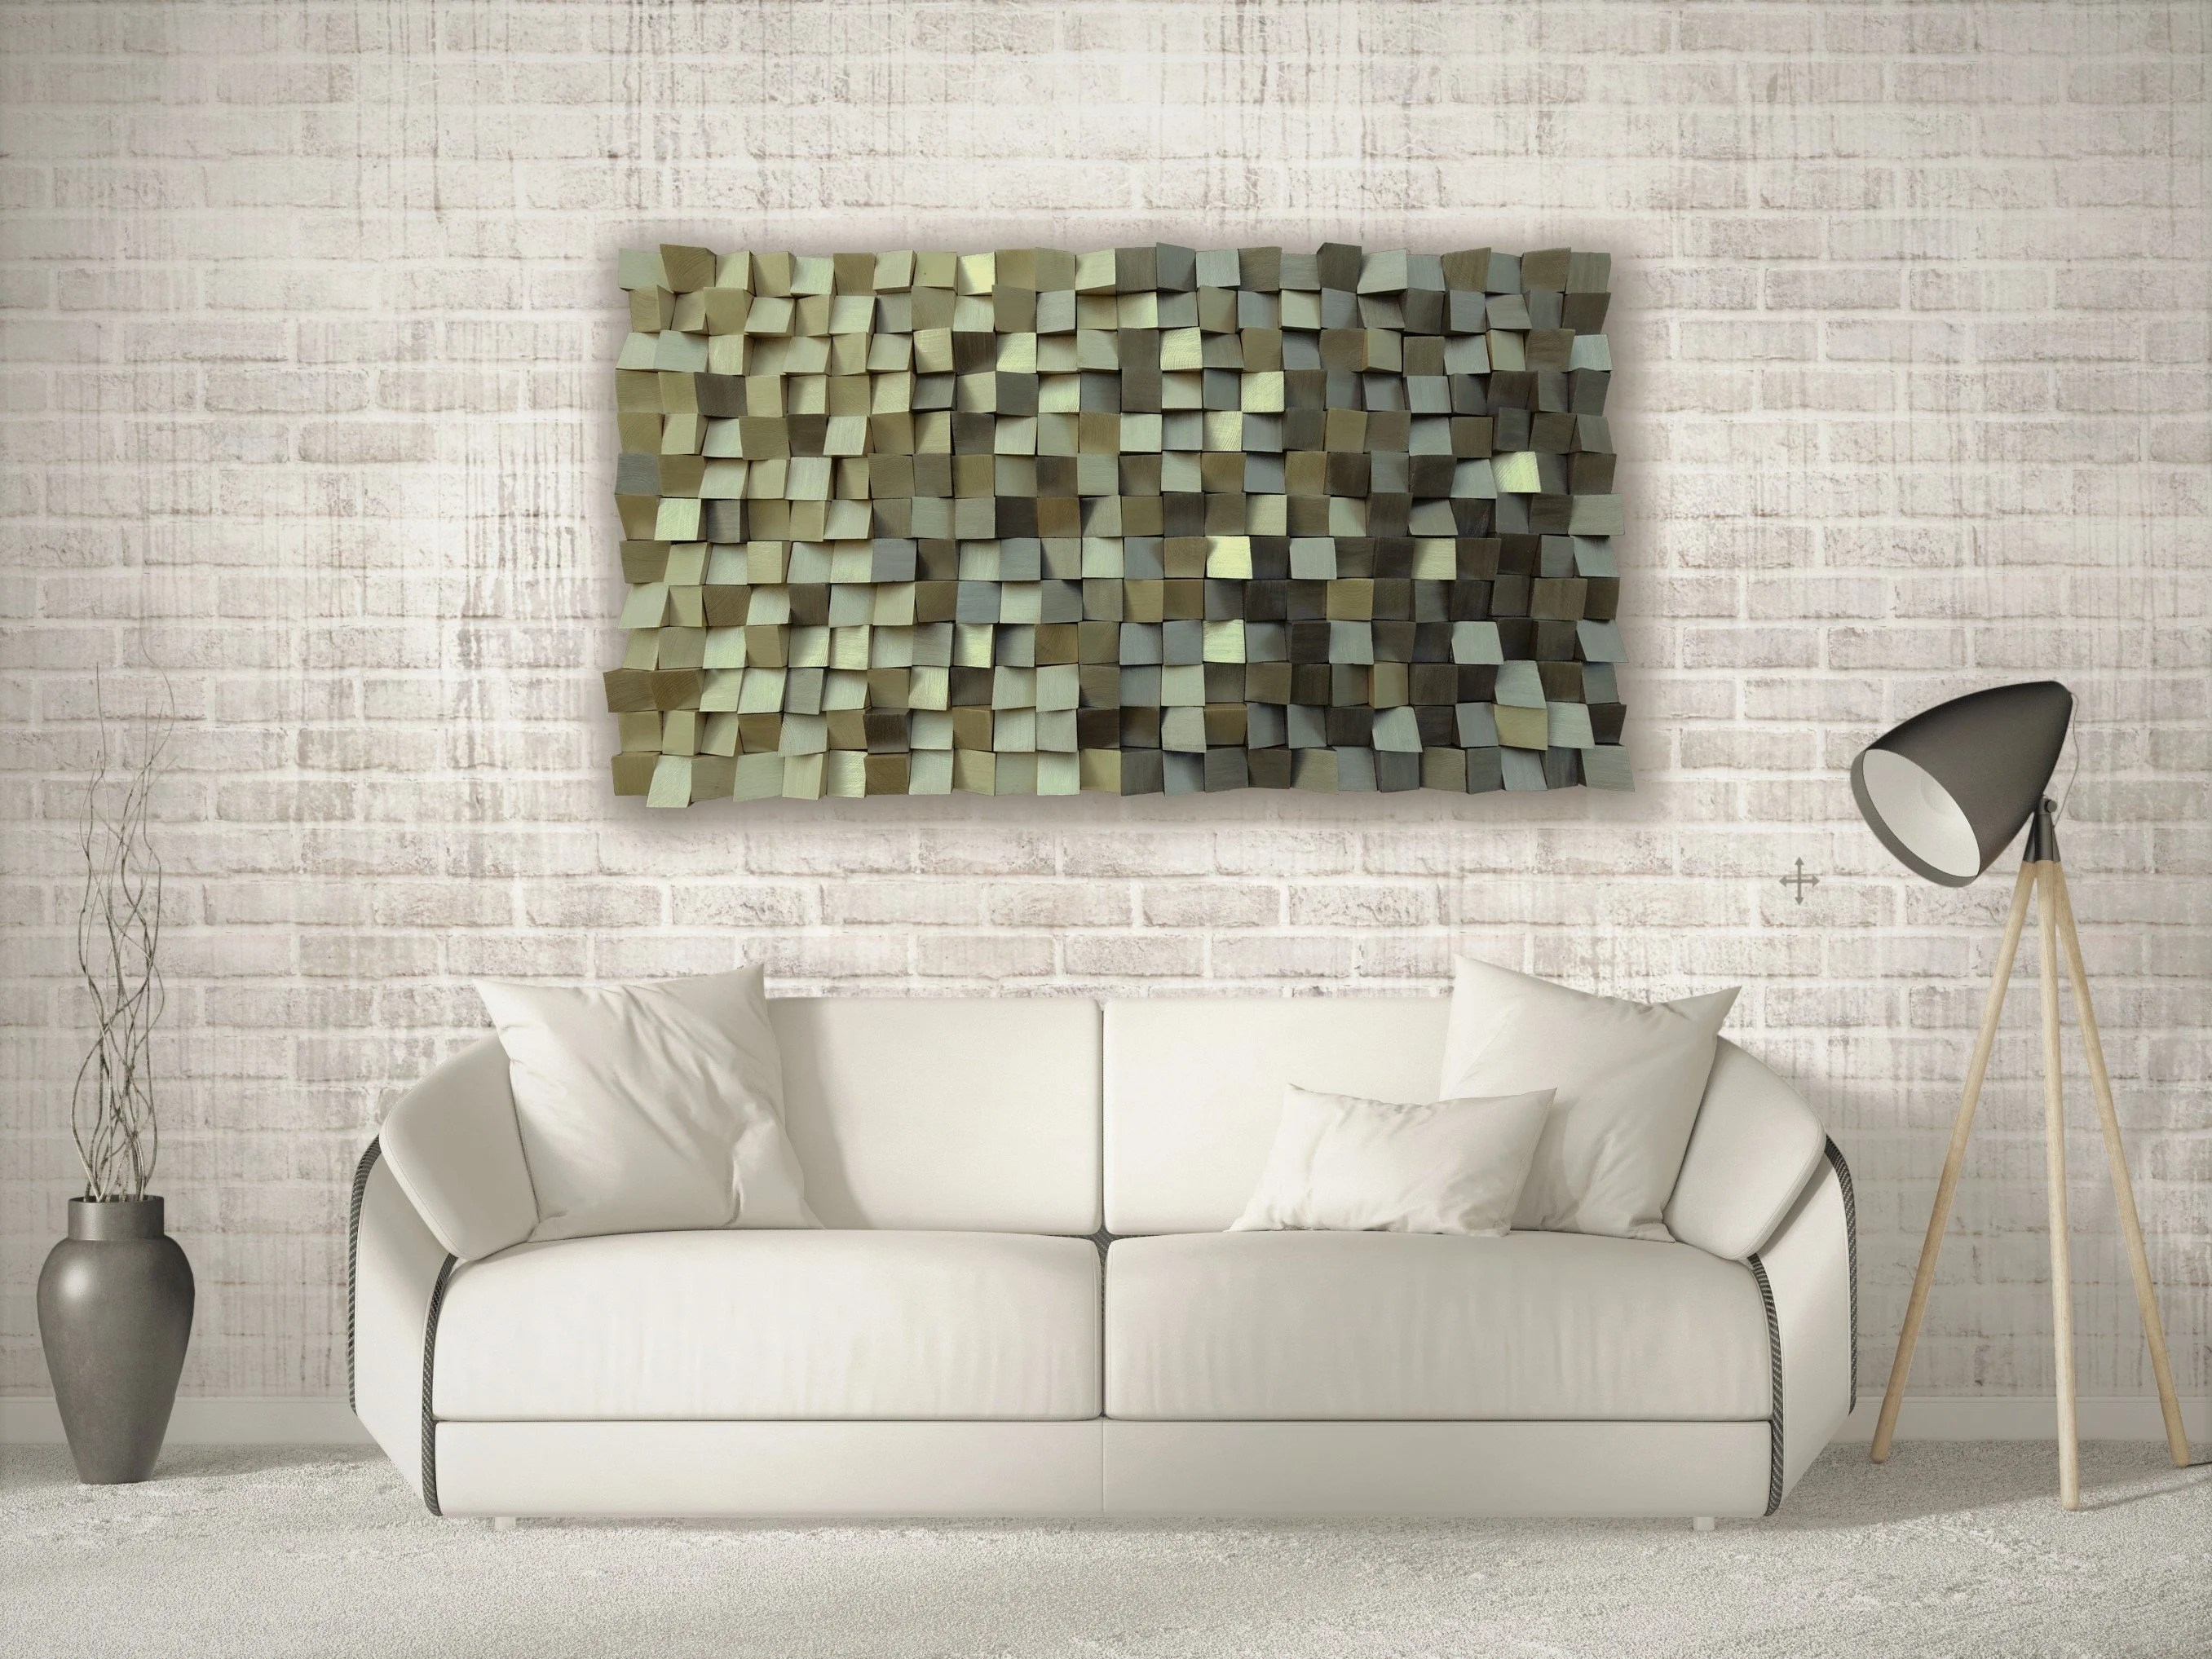 3D Wood Wall Art Gold And Silver, Mosaic Wood Wall Art